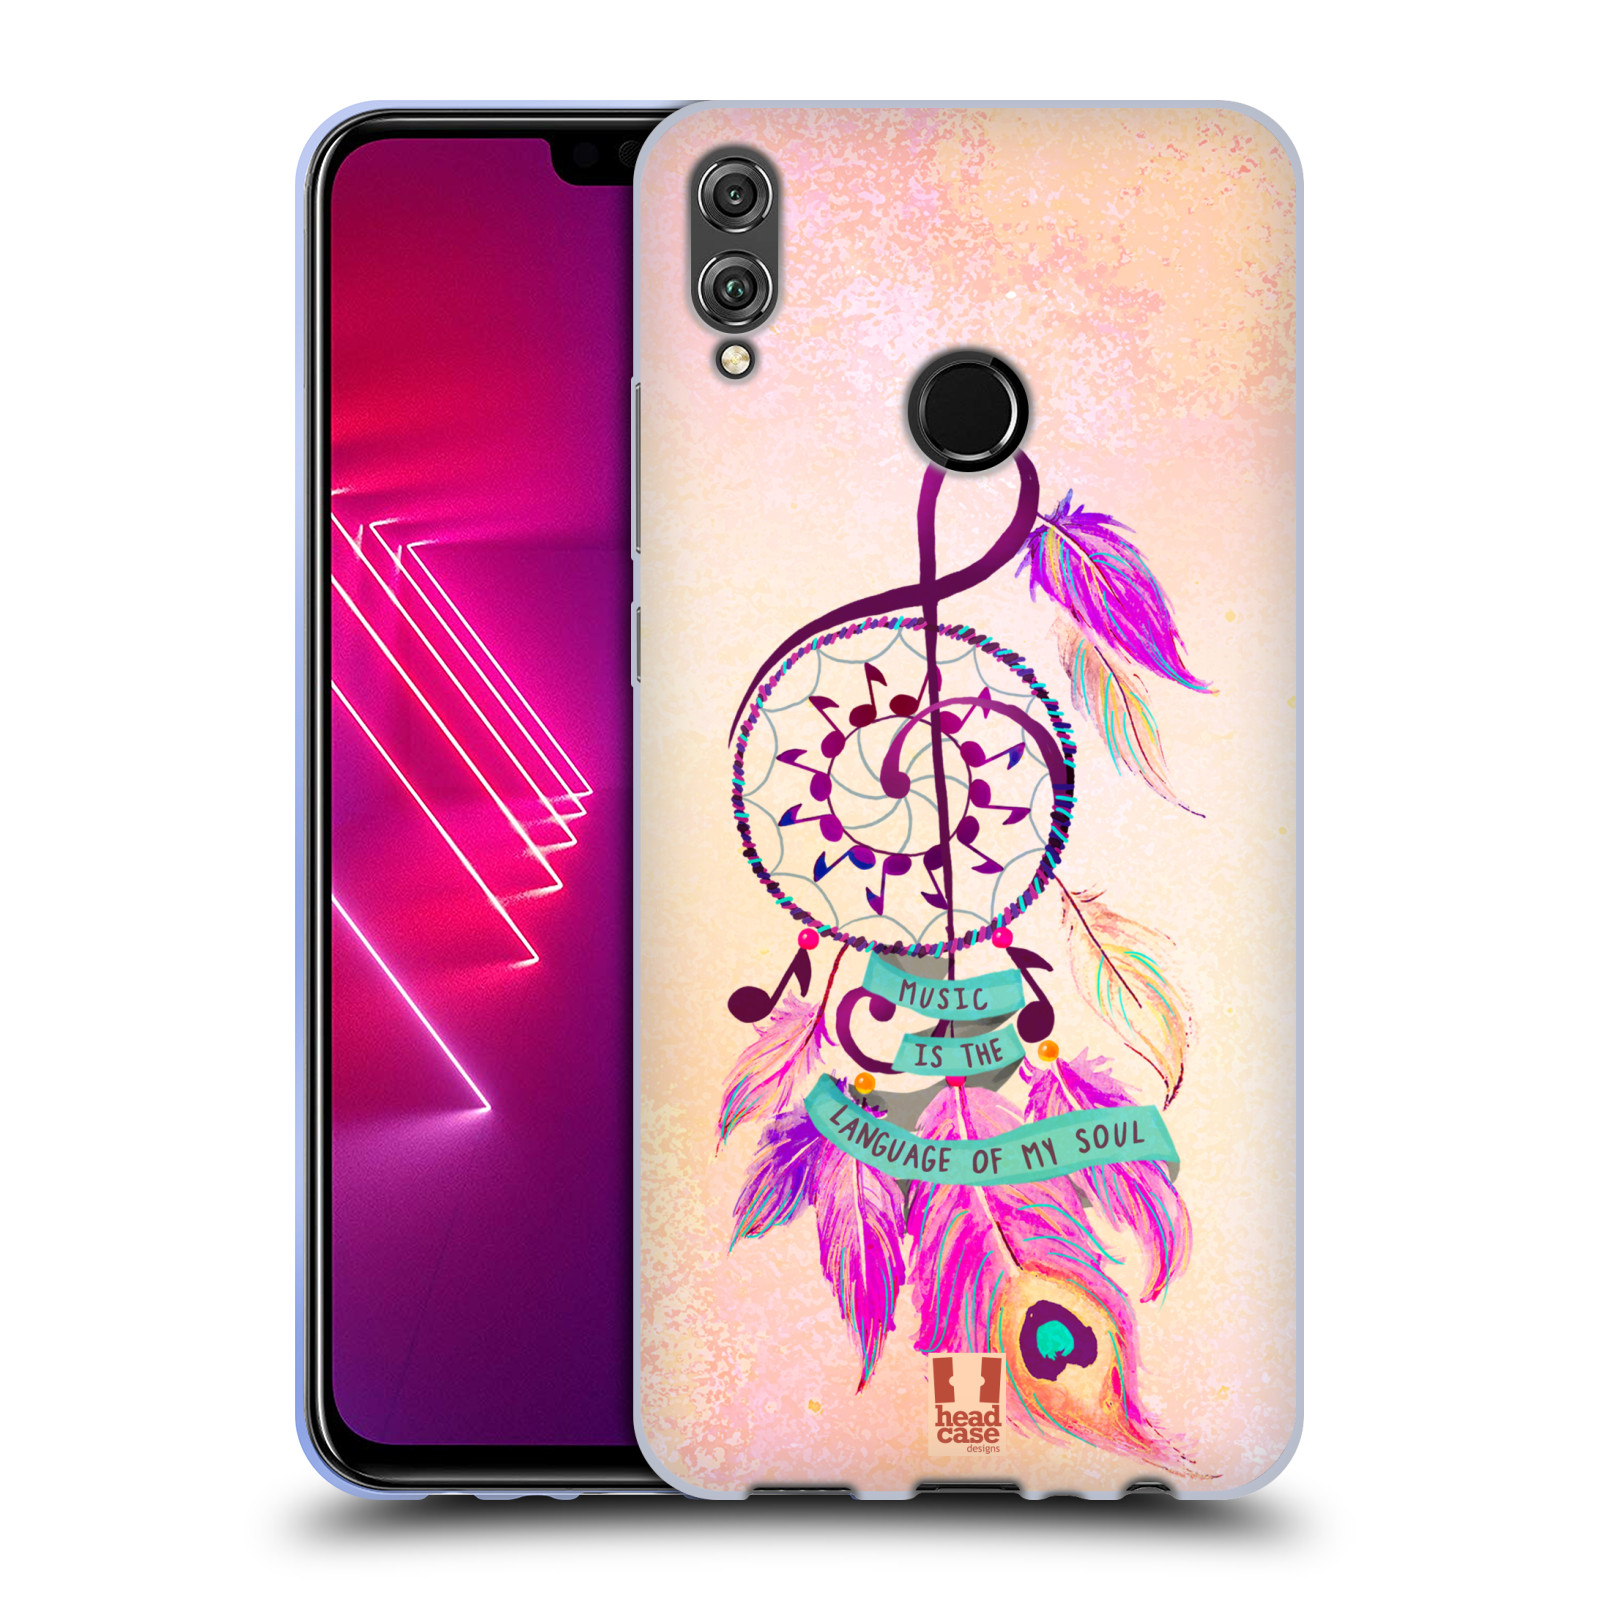 Silikonové pouzdro na mobil Honor View 10 Lite - Head Case - Lapač Assorted Music